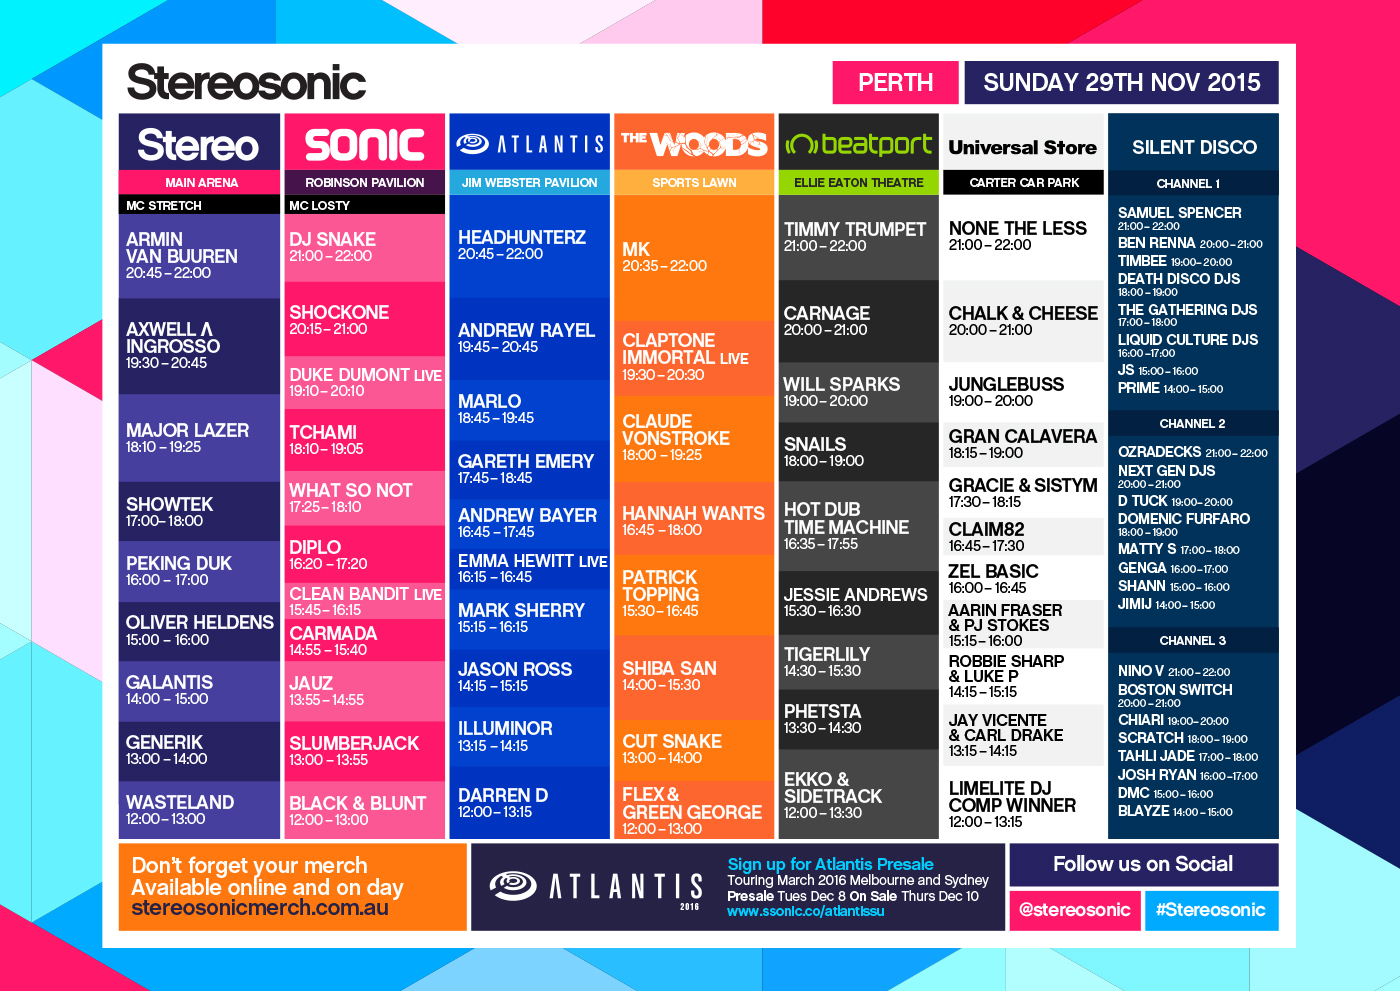 Stereosonic 2015 Set Times Perth